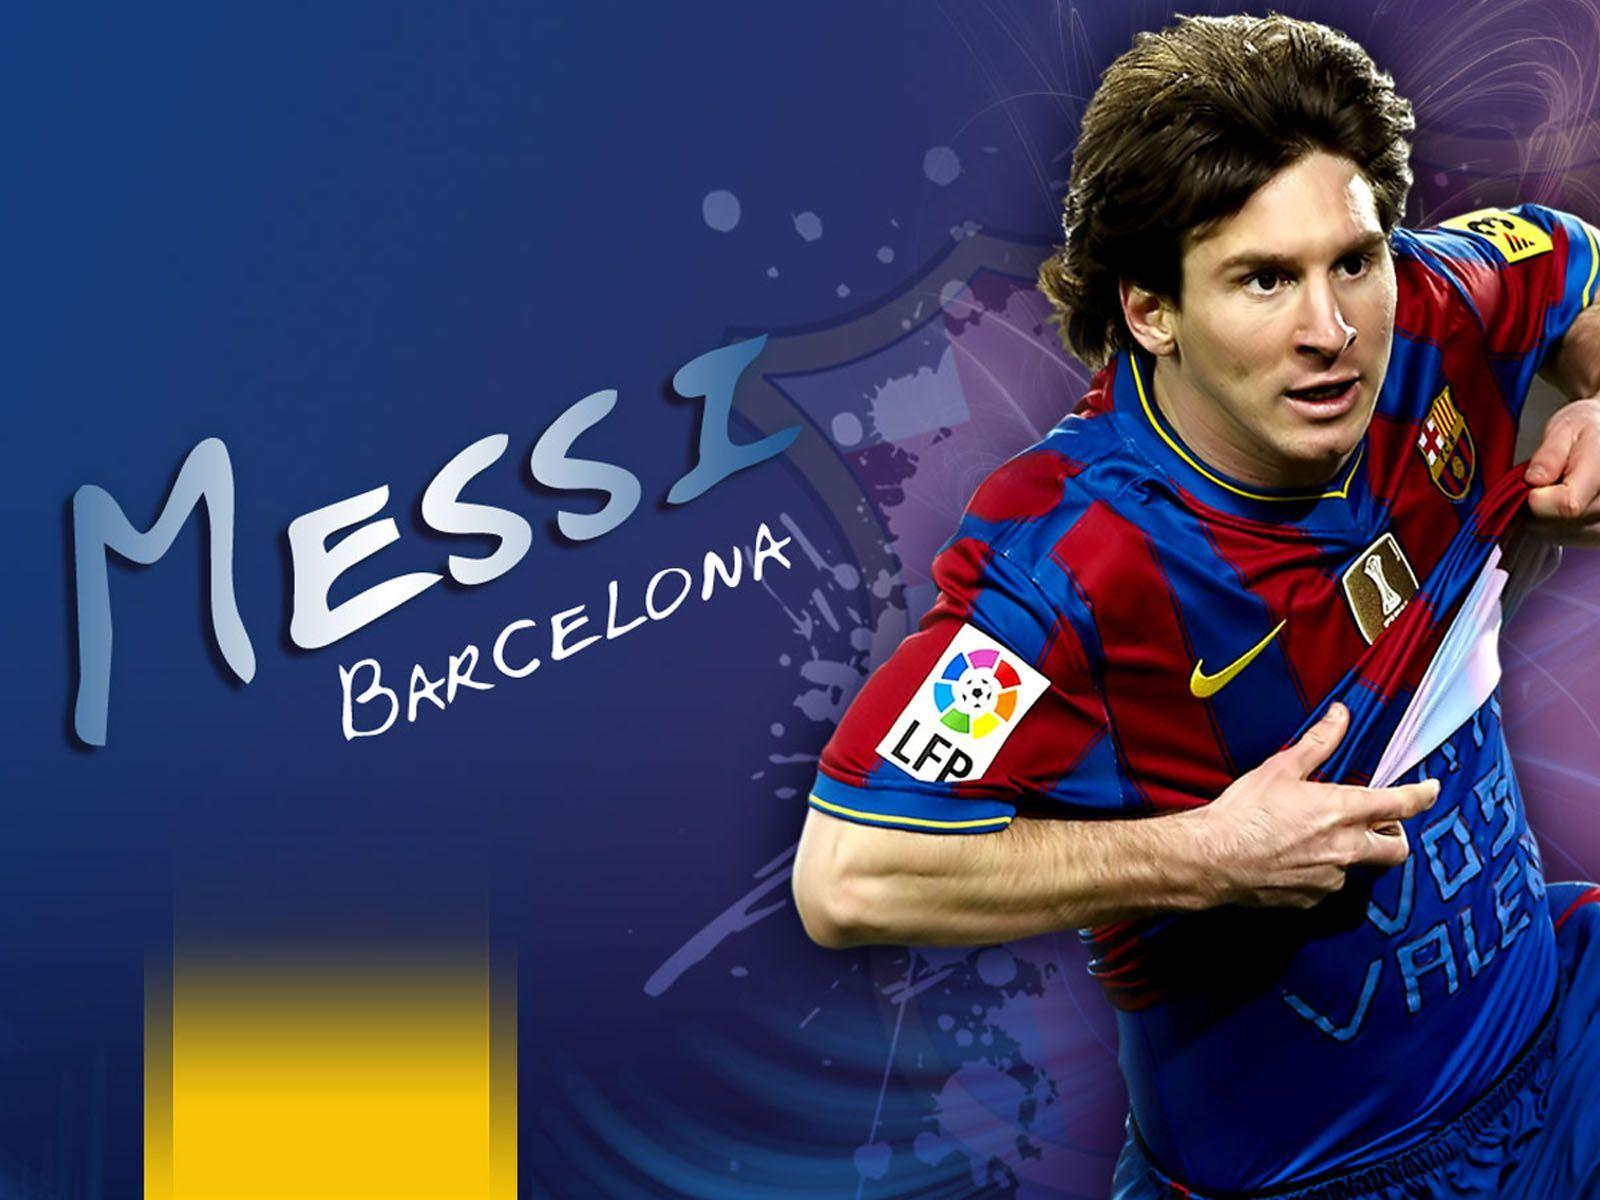 Messi Wallpapers 2021